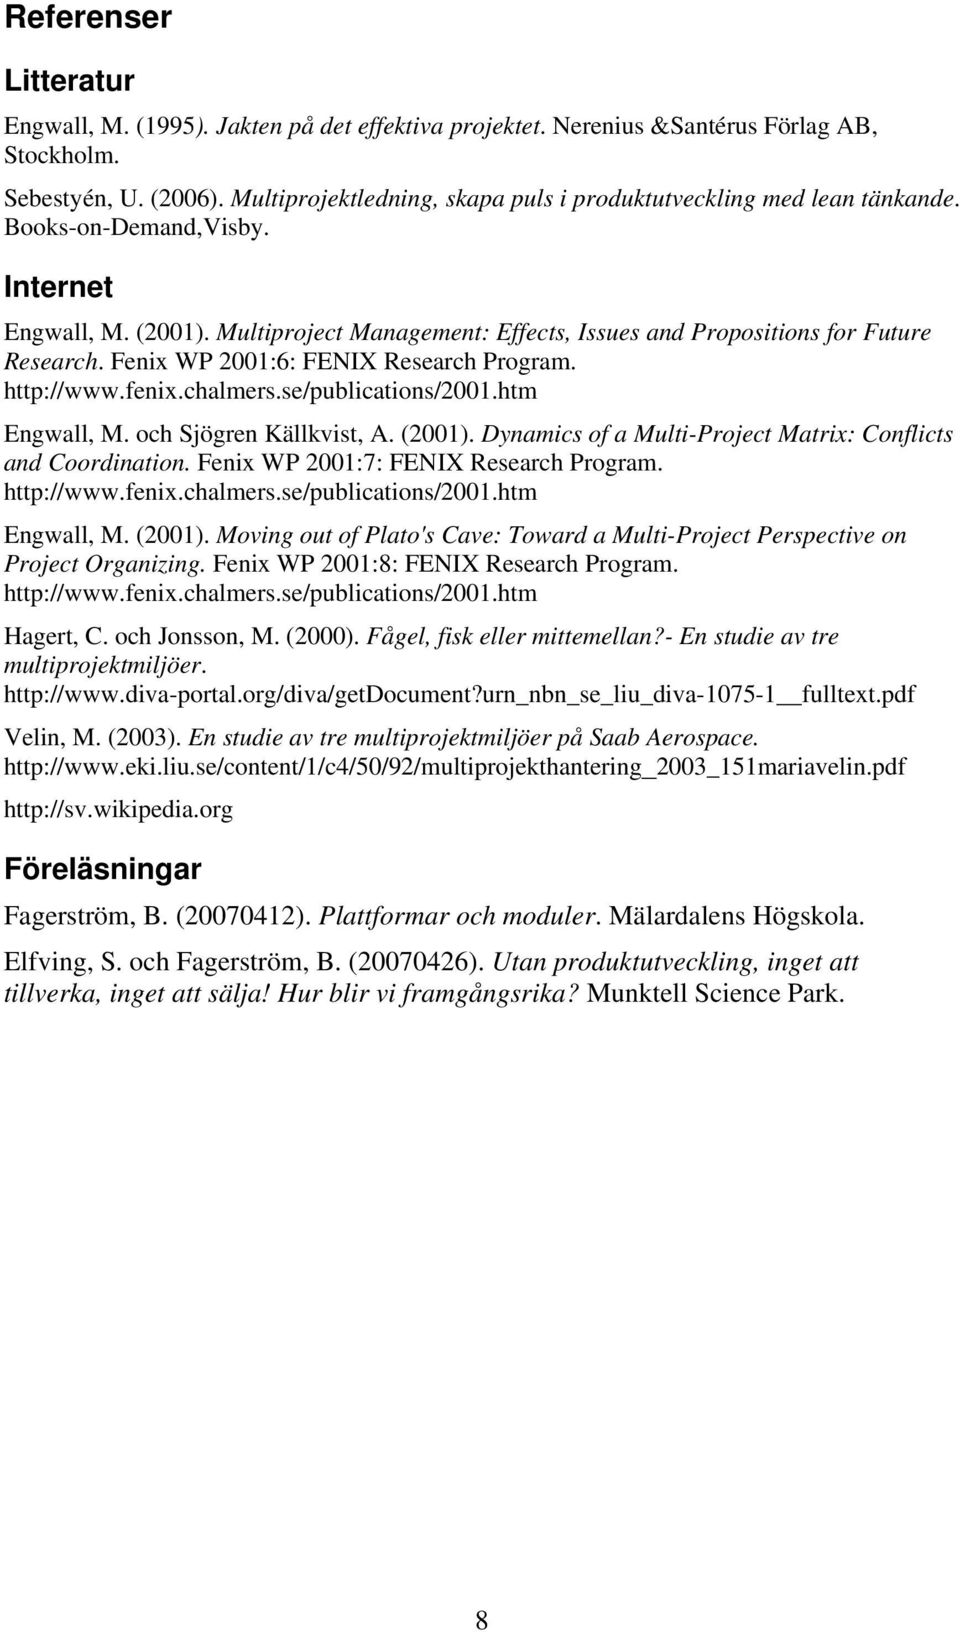 Multiproject Management: Effects, Issues and Propositions for Future Research. Fenix WP 2001:6: FENIX Research Program. http://www.fenix.chalmers.se/publications/2001.htm Engwall, M.